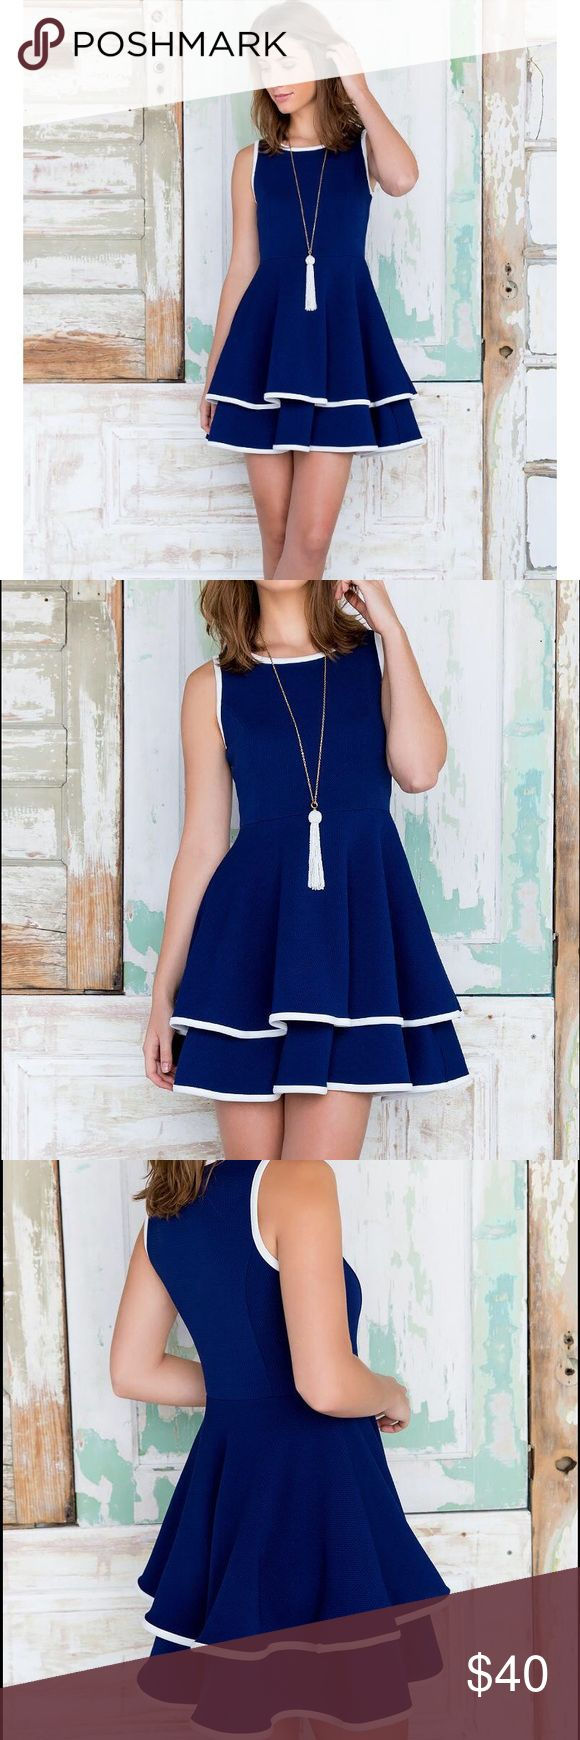 Francesca's Navy skater dress NWT Francesca's navy blue double layer skater dress with white trim. Made of a thick textured material. Size medium Francesca's Collections Dresses Mini